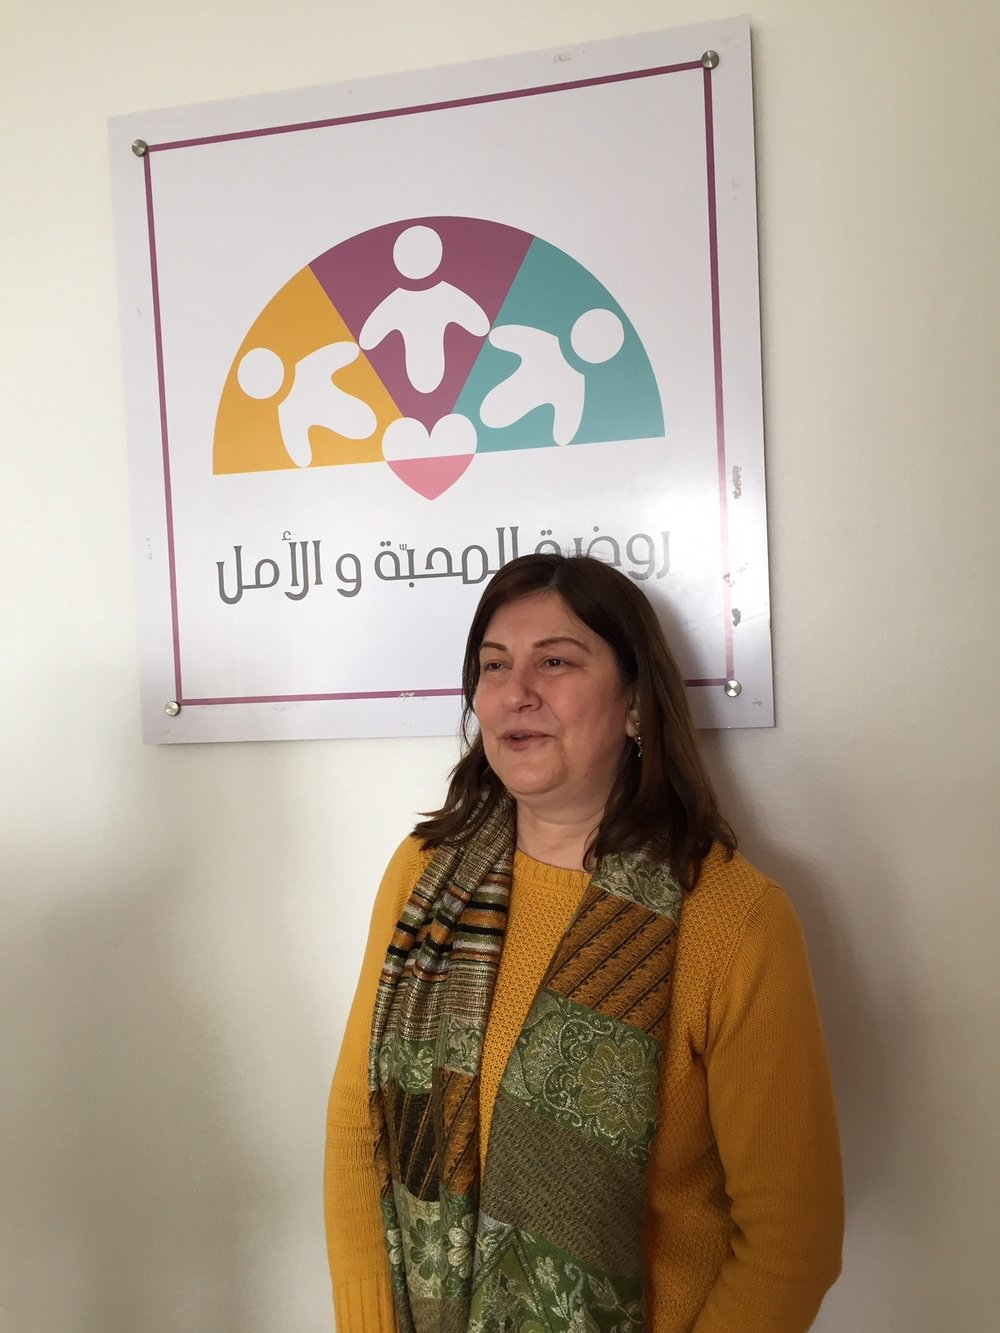 Sylvia is the director of the Love and Hope Preschool